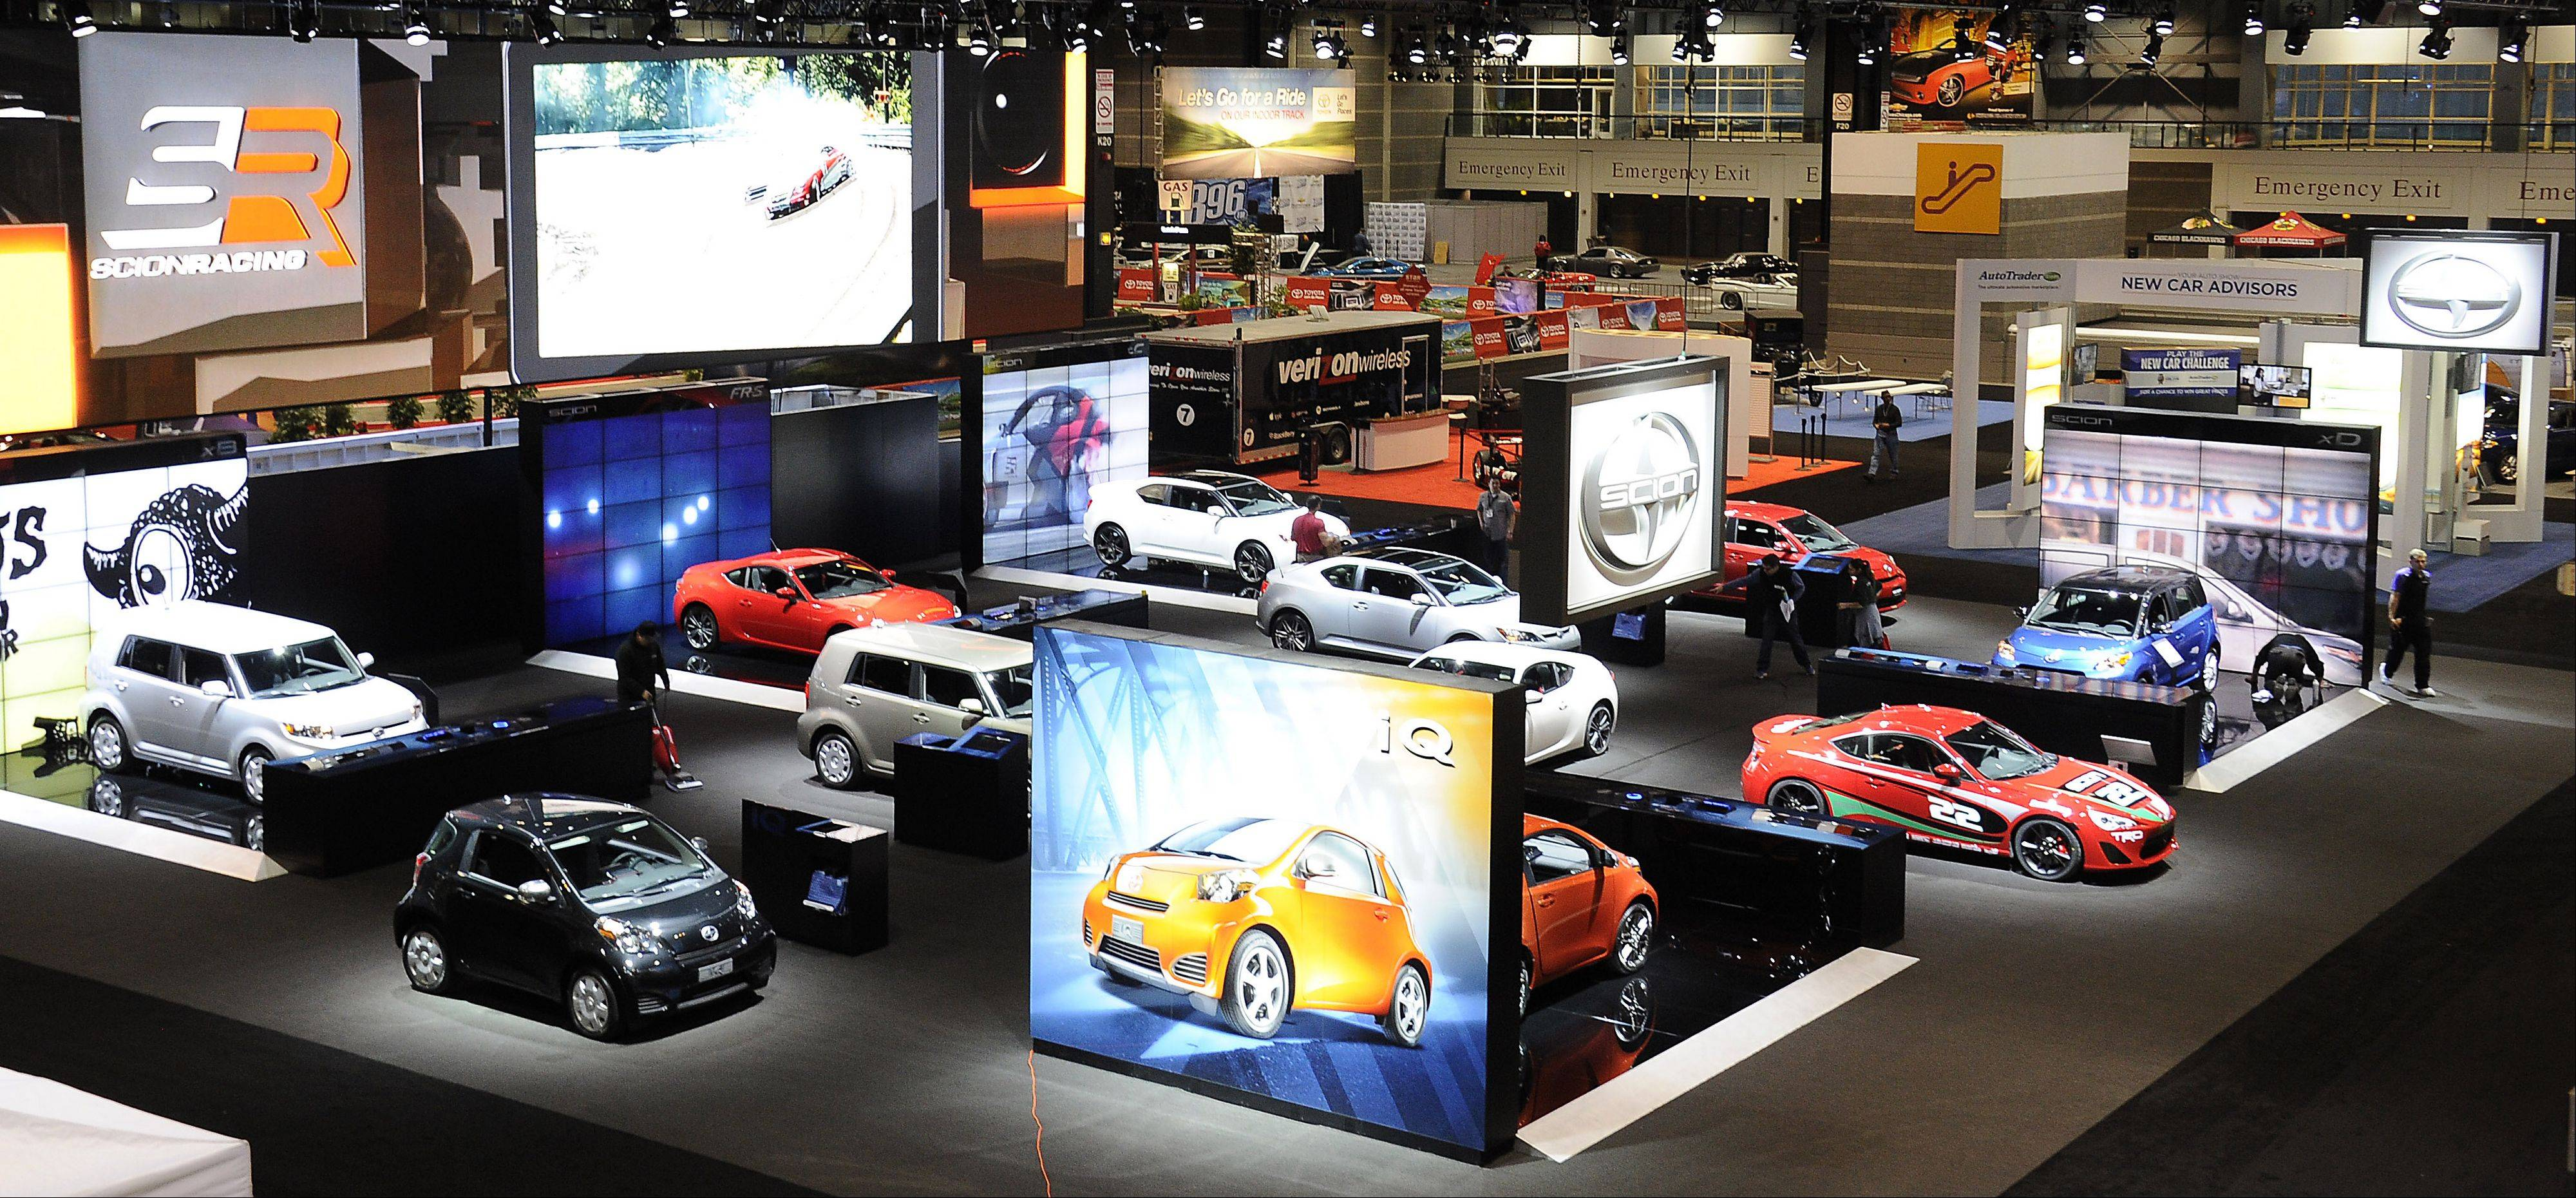 The cars are all lined up to meet the crowds at the 2013 Chicago Auto Show this weekend.